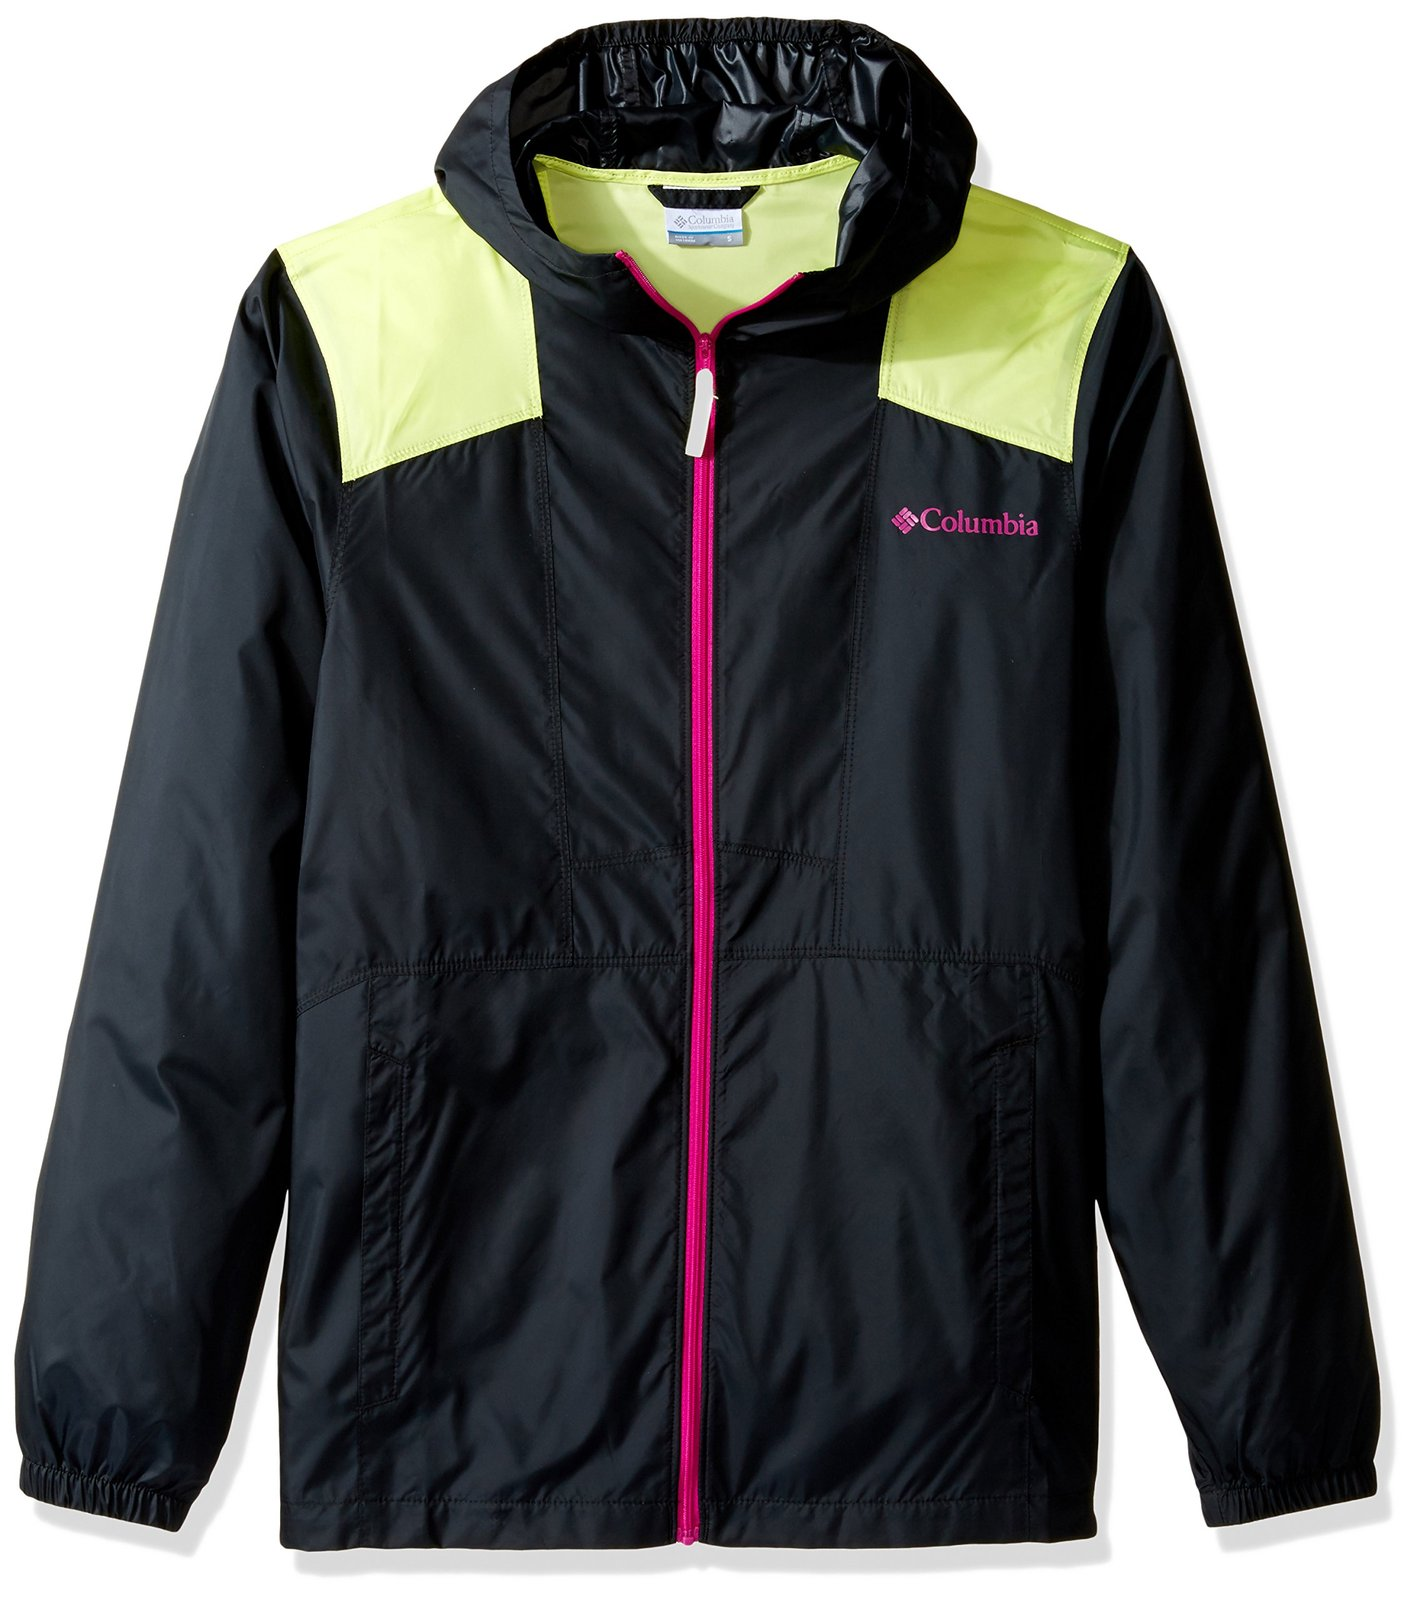 Columbia Men's Flashback Windbreaker, Black, Neon Light, Large